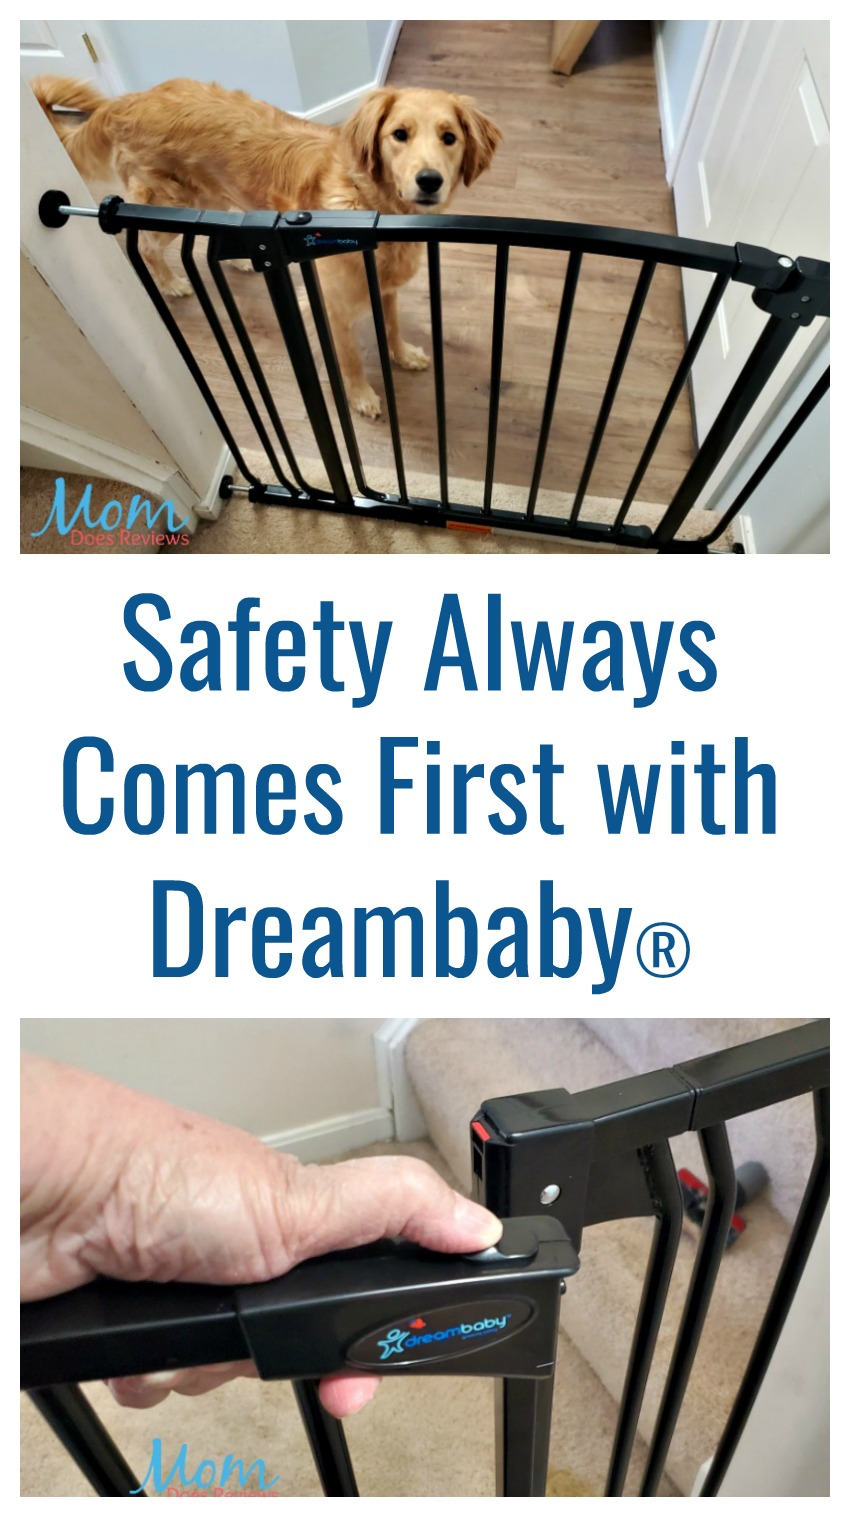 Safety Always Comes First with Dreambaby® MegaChristmas19